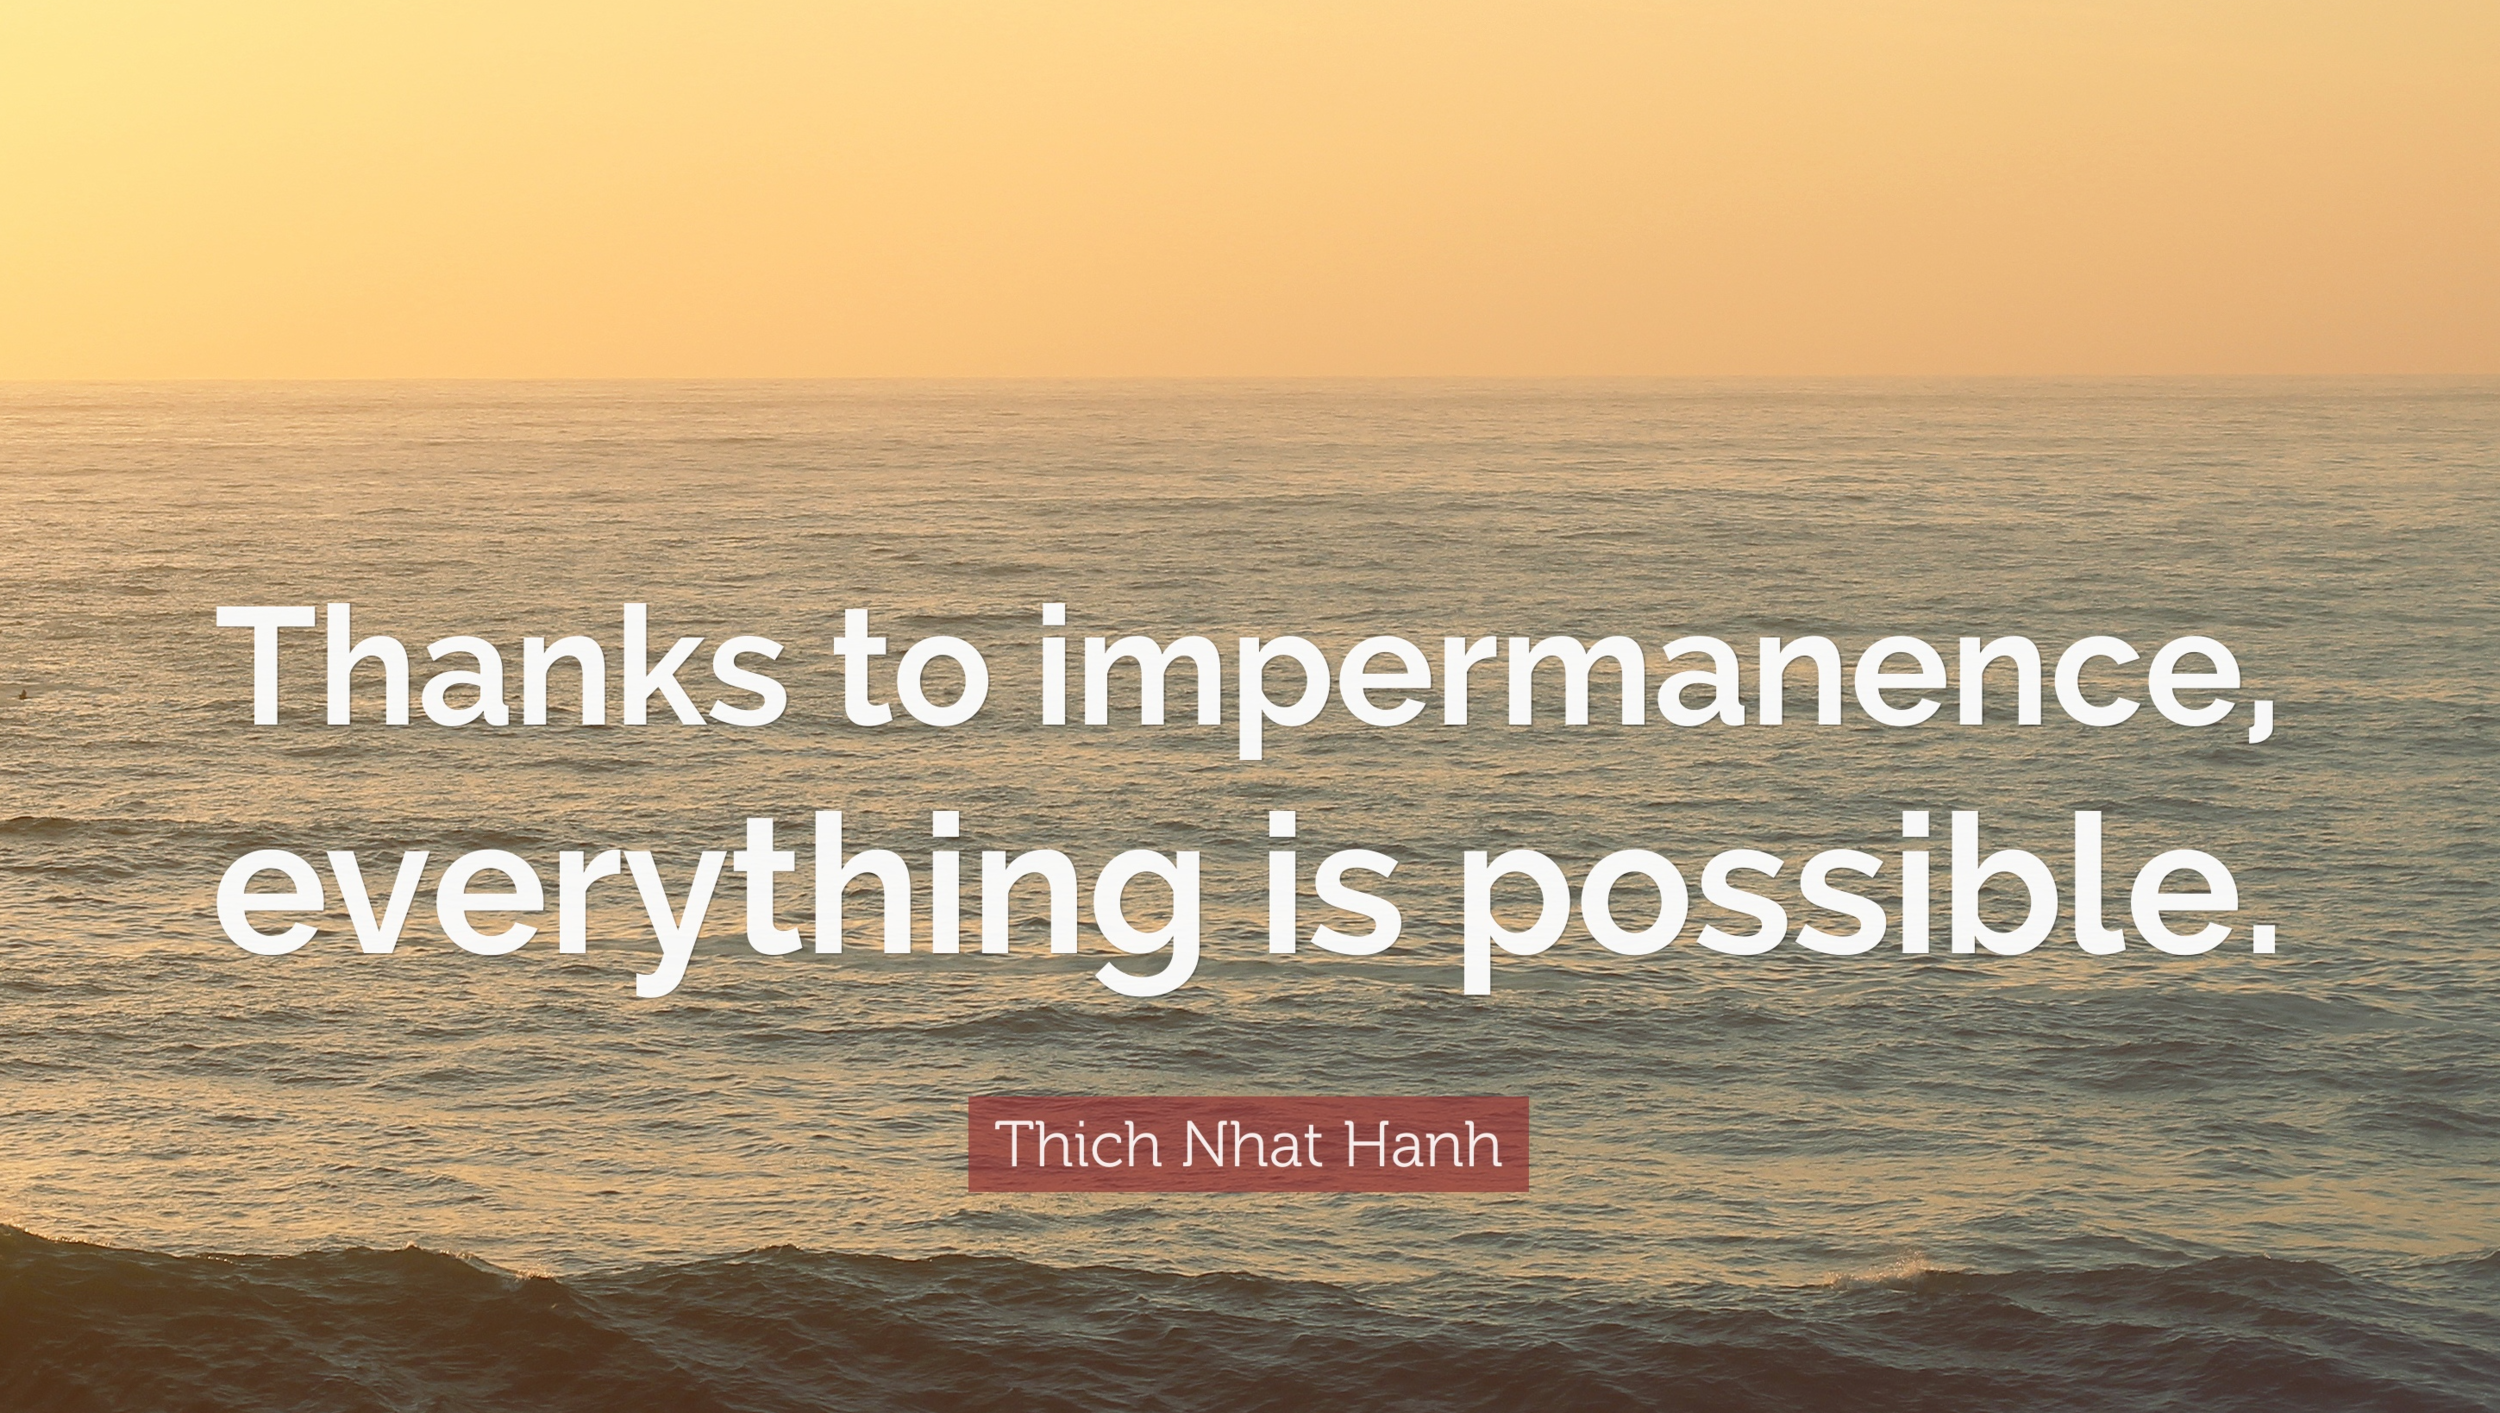 thich-nhat-hanh-impermanence-yogarani-rani-sheilagh-blof.png